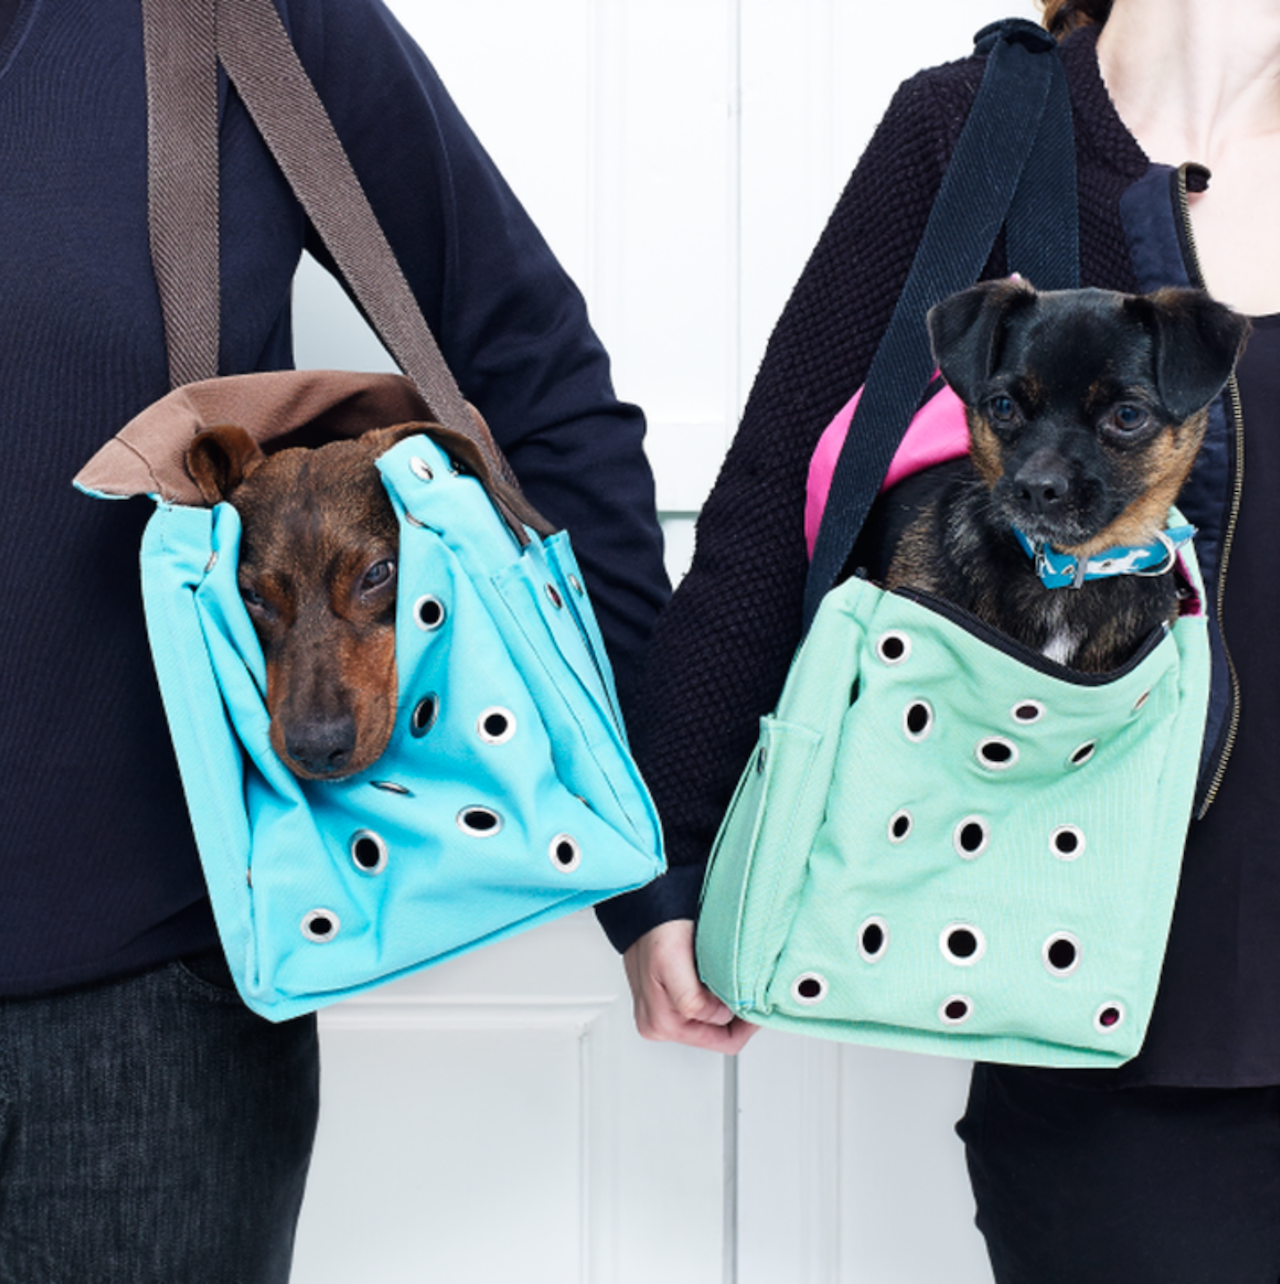 Melollevo 2-in-1 Pet Carrier and Travel Bed from Pepito&Co.